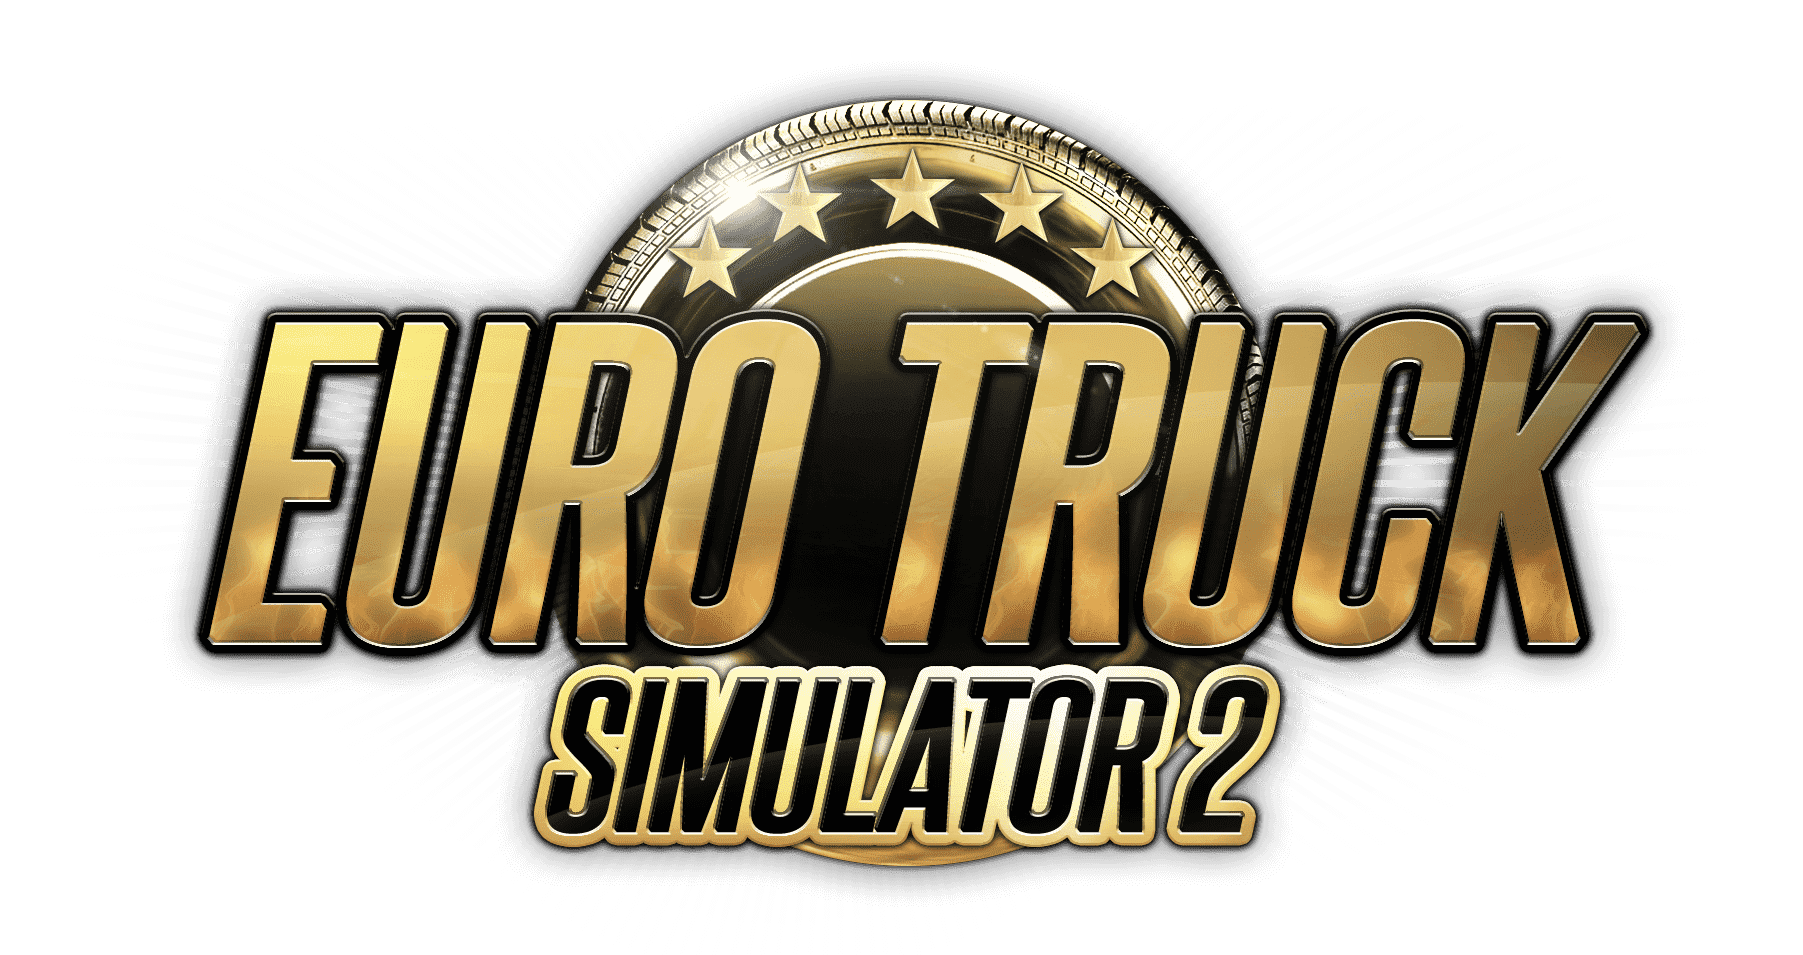 SETC highway driving | Euro truck simulator 2 | indian bus